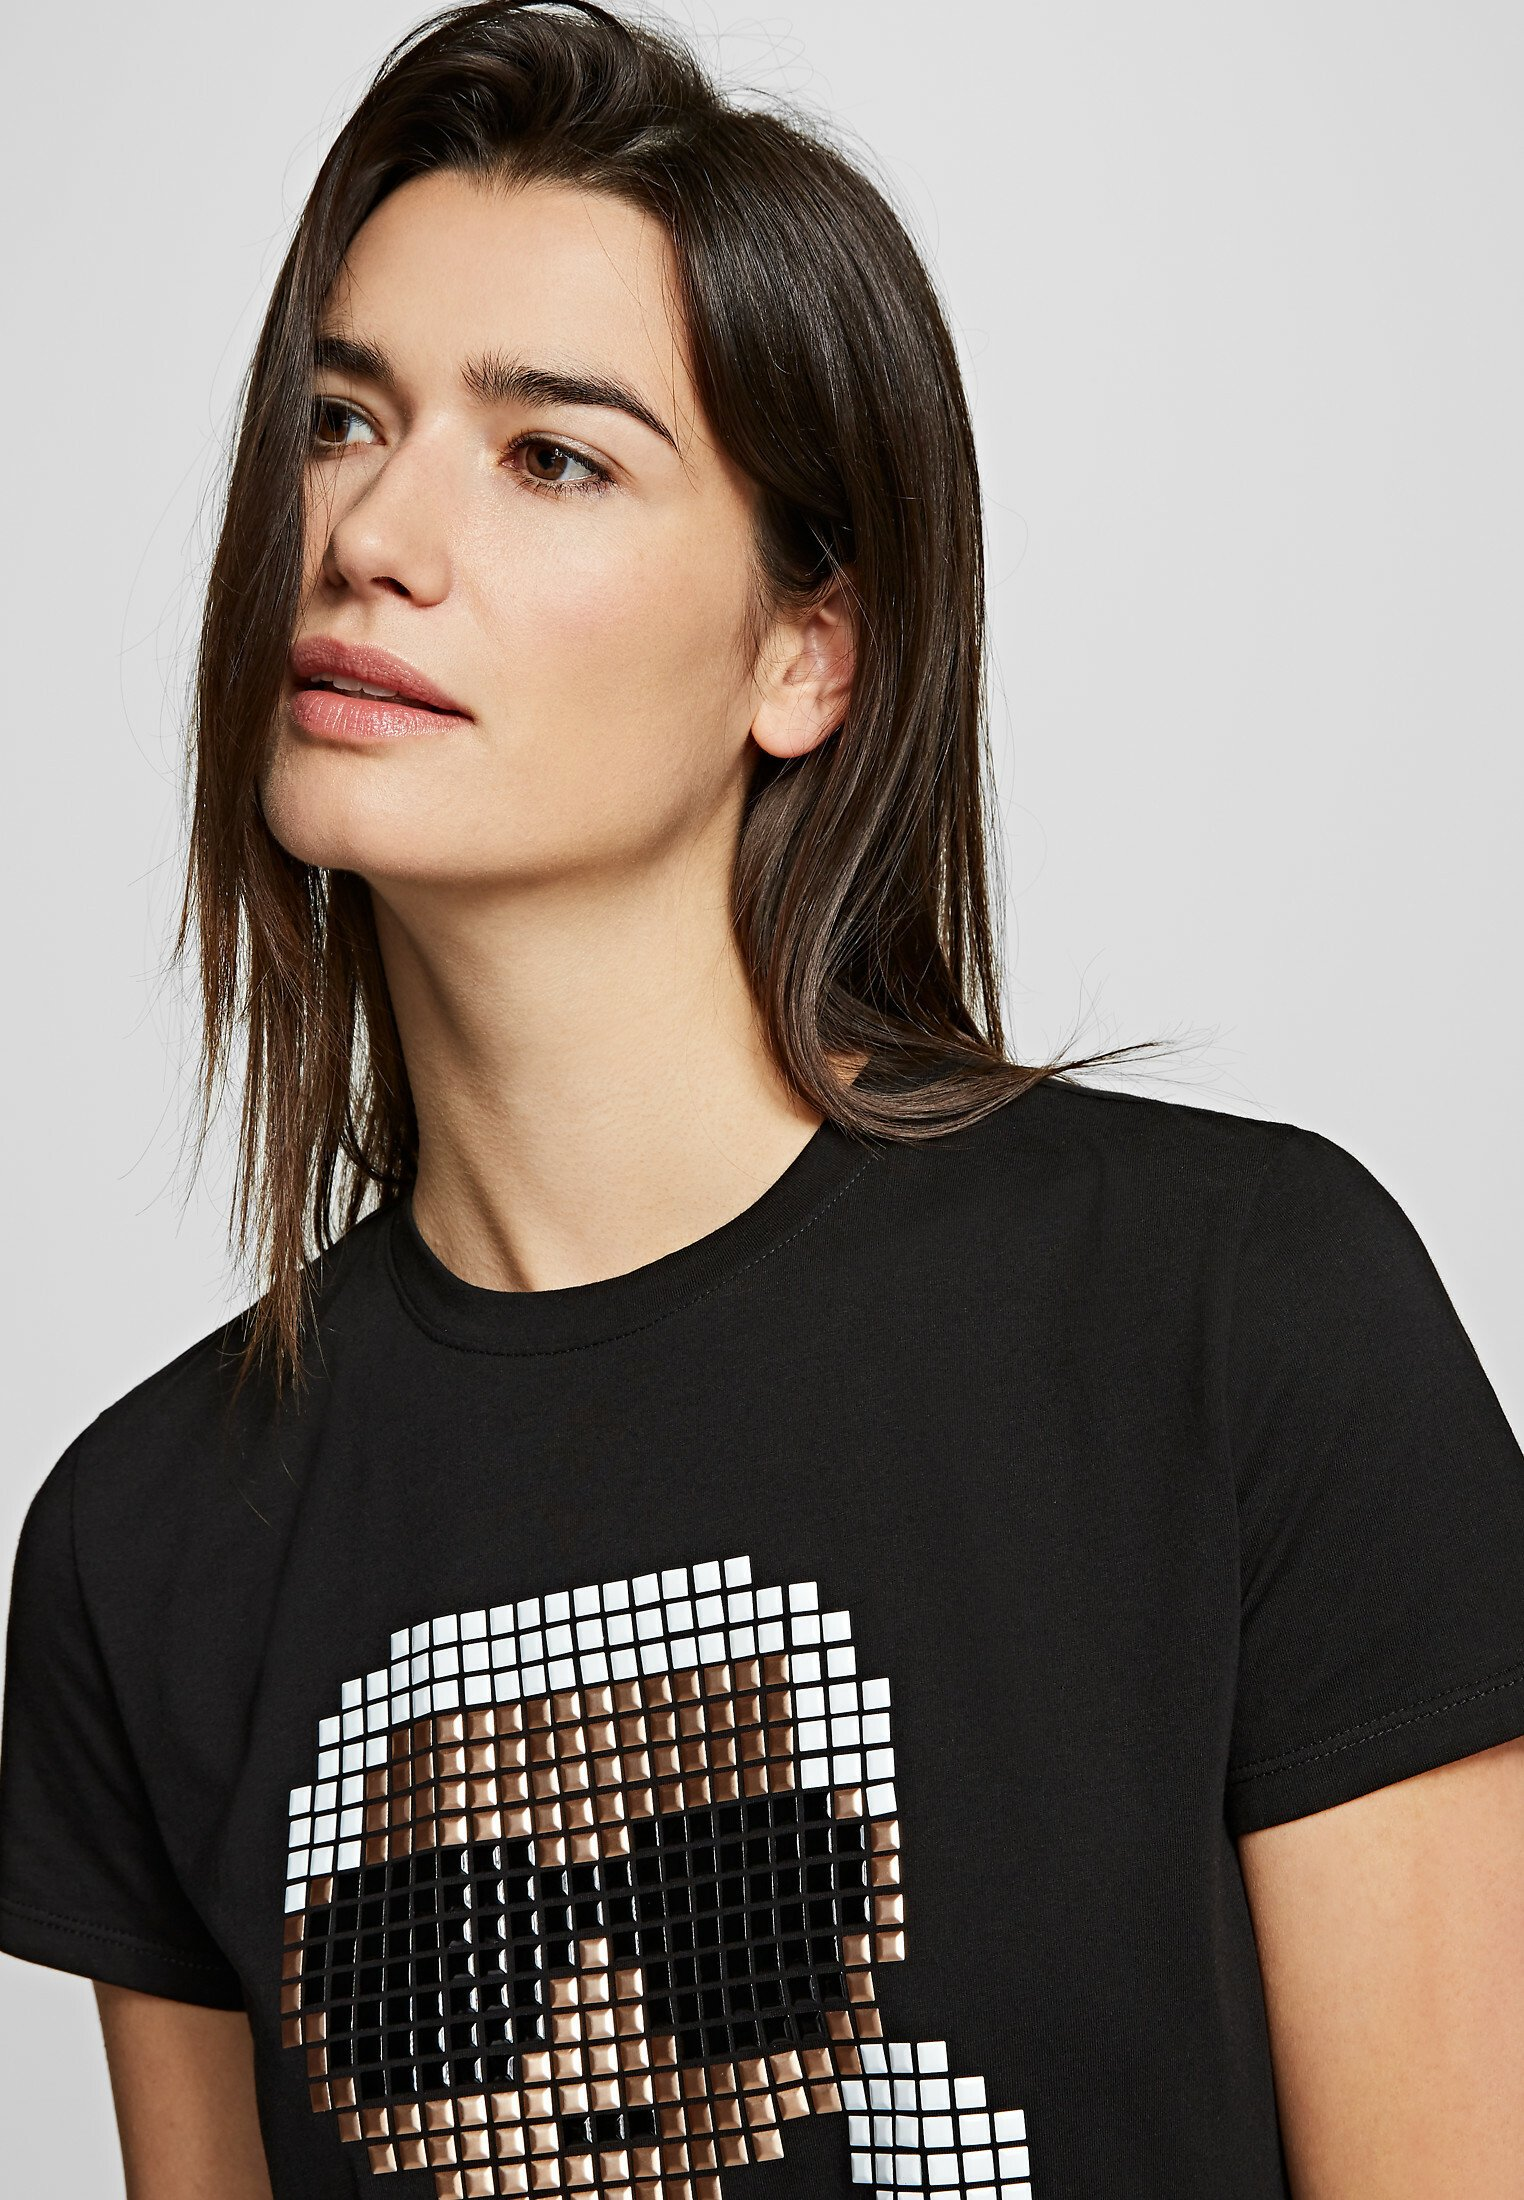 Karl Lagerfeld Pixel - Print T-shirt Black UK